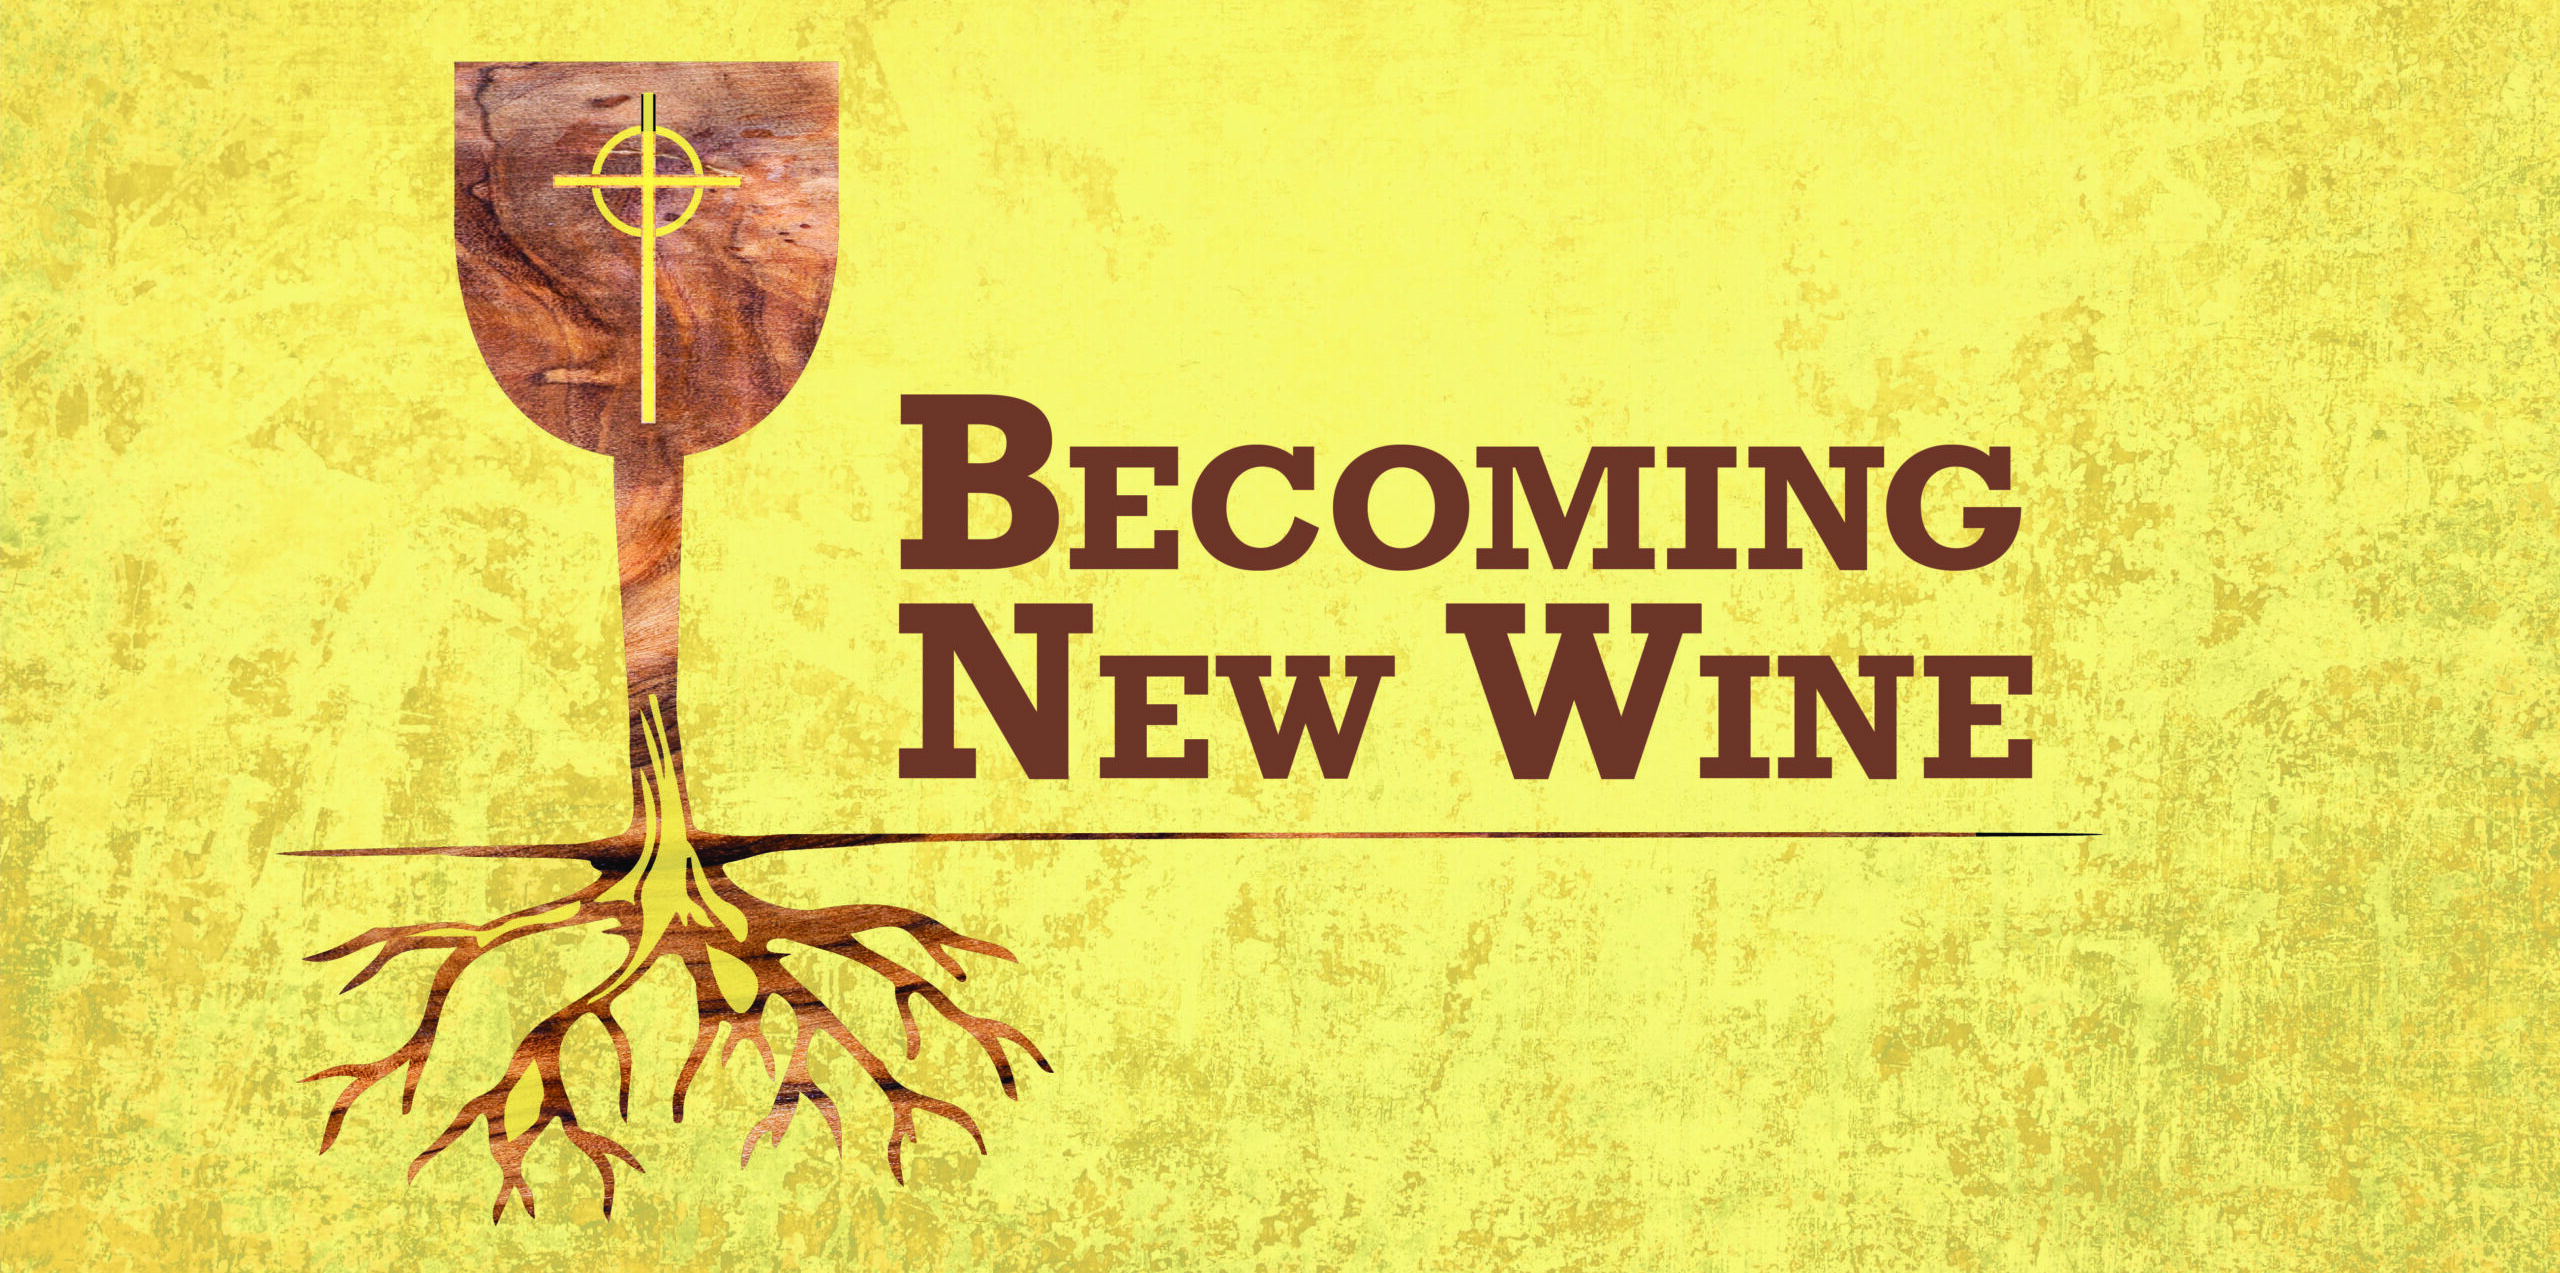 Becoming New Wine